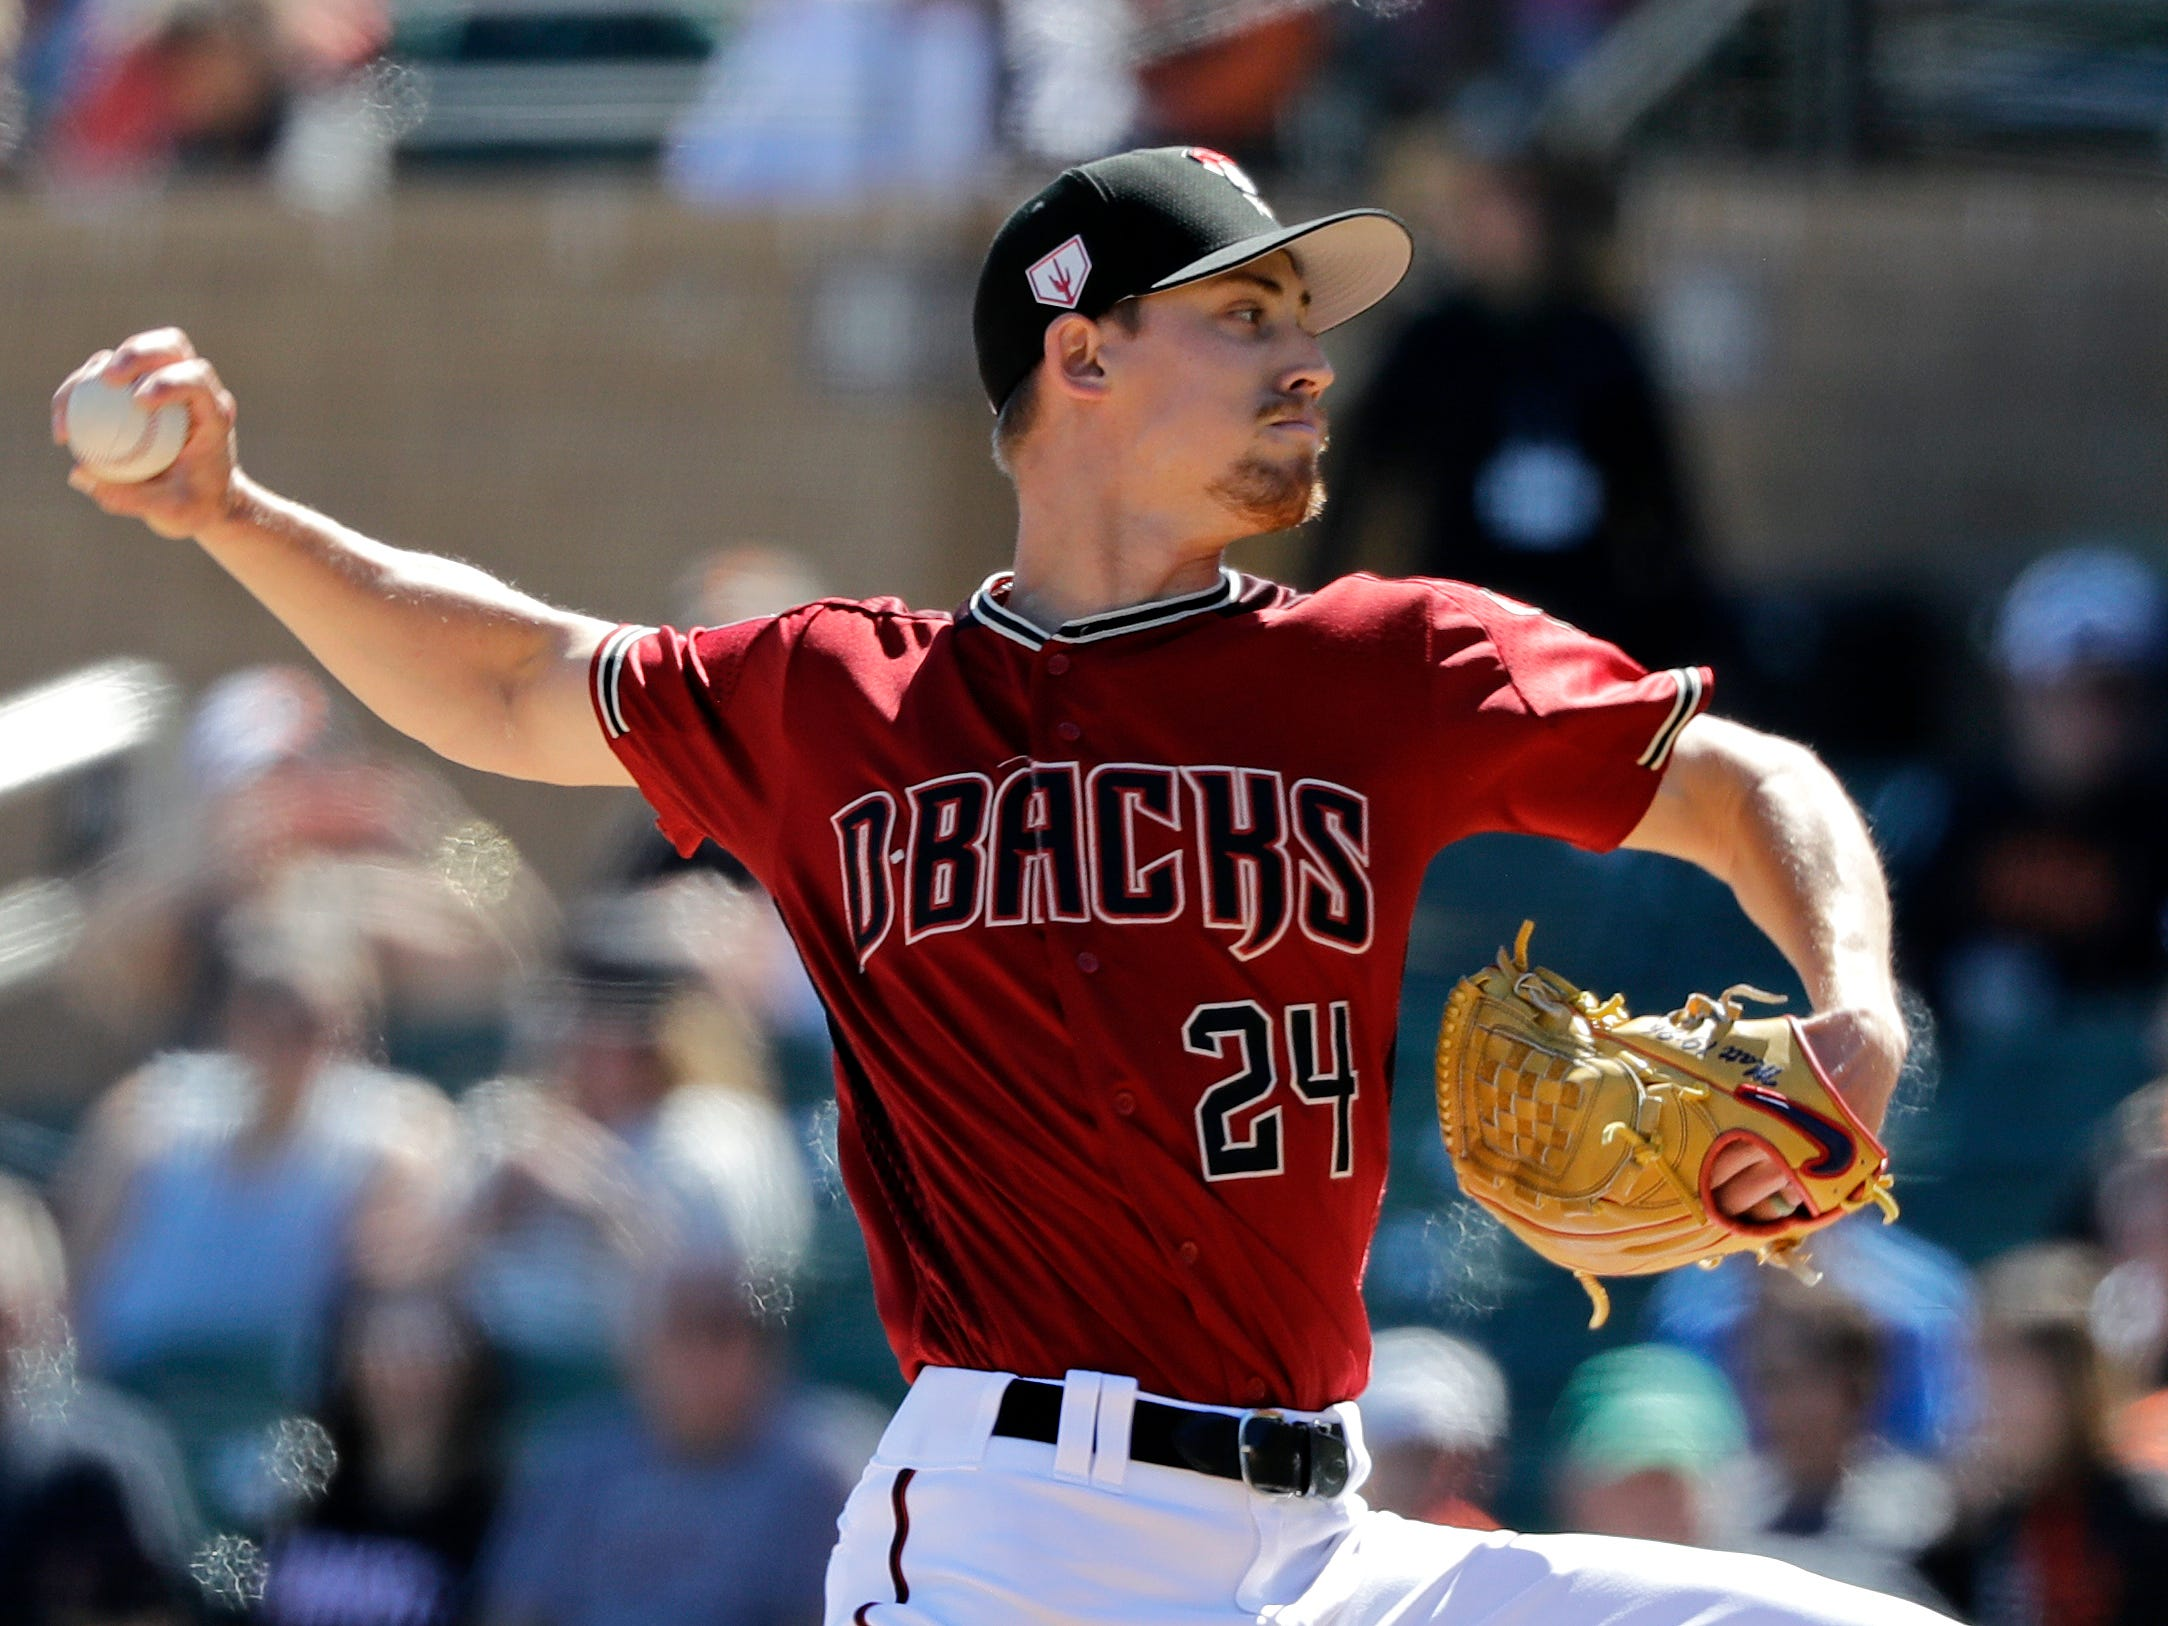 Arizona Diamondbacks starting pitcher Luke Weaver throws to a San Francisco Giants batter during the first inning of a spring training baseball game Thursday, March 14, 2019, in Scottsdale, Ariz.